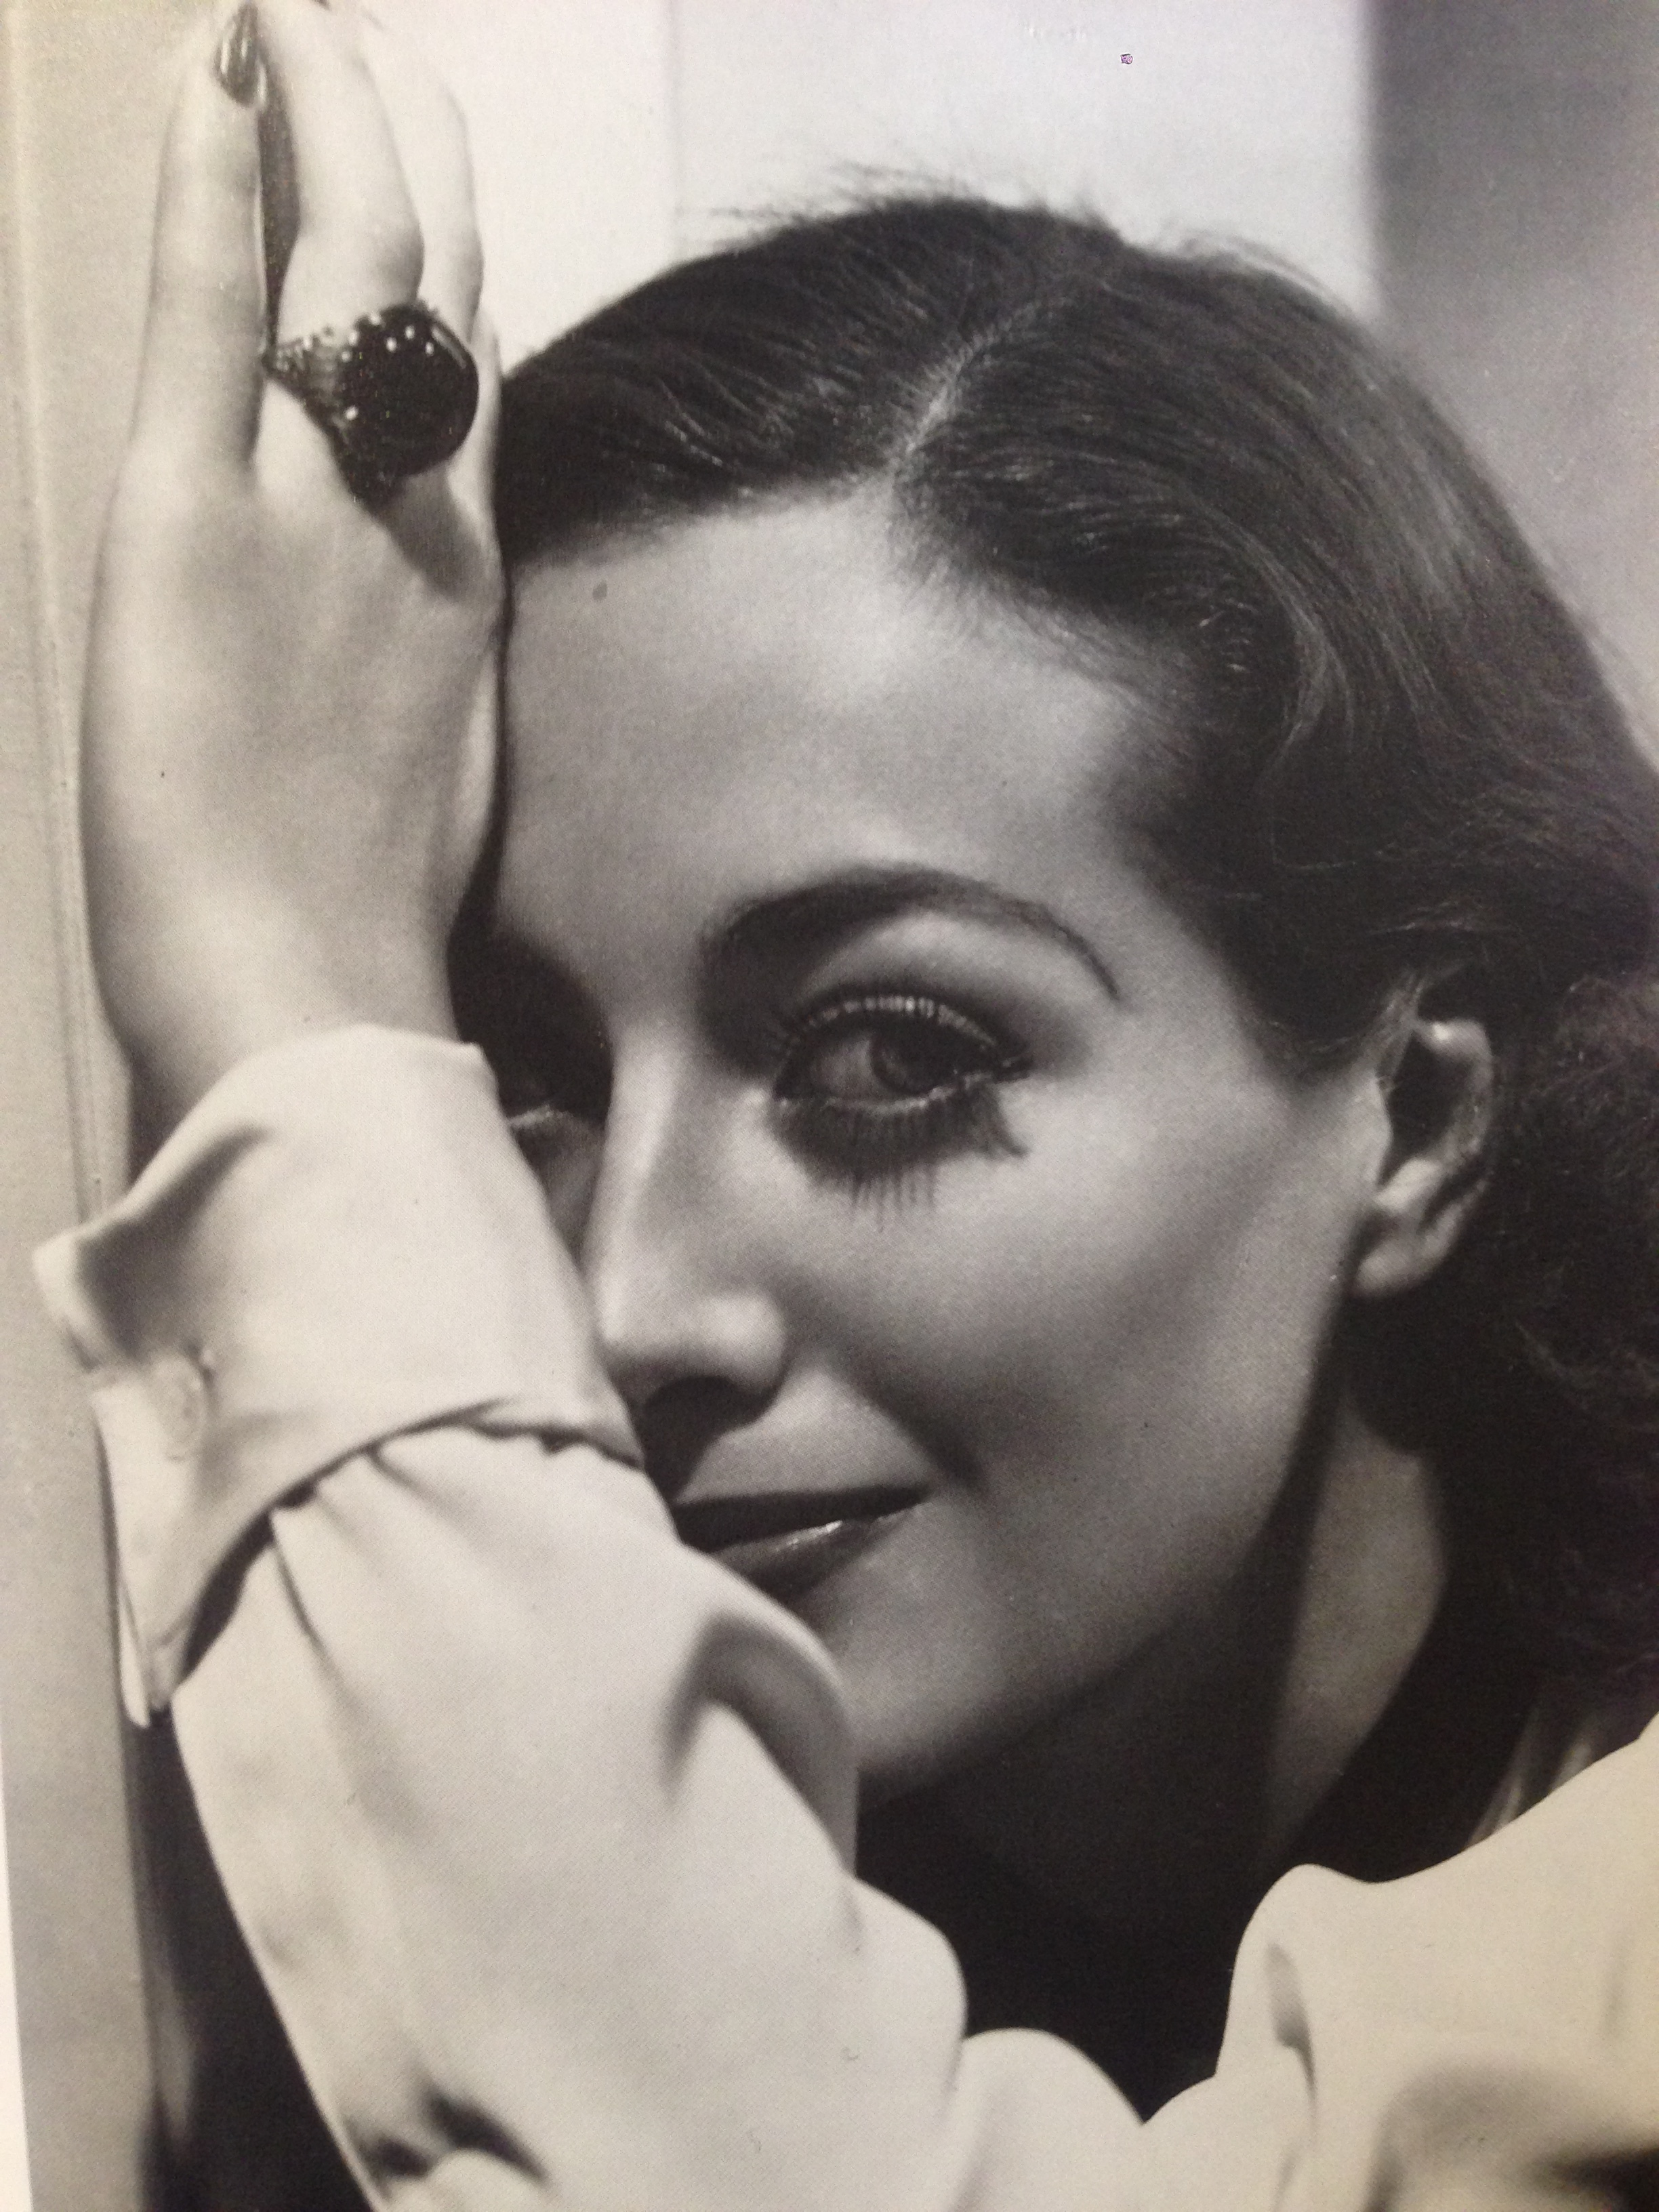 Joan Crawford loved jewellery, especially statement rings set with large gemstones.  In this photo, she is wearing a 72ct emerald-cut Sapphire.